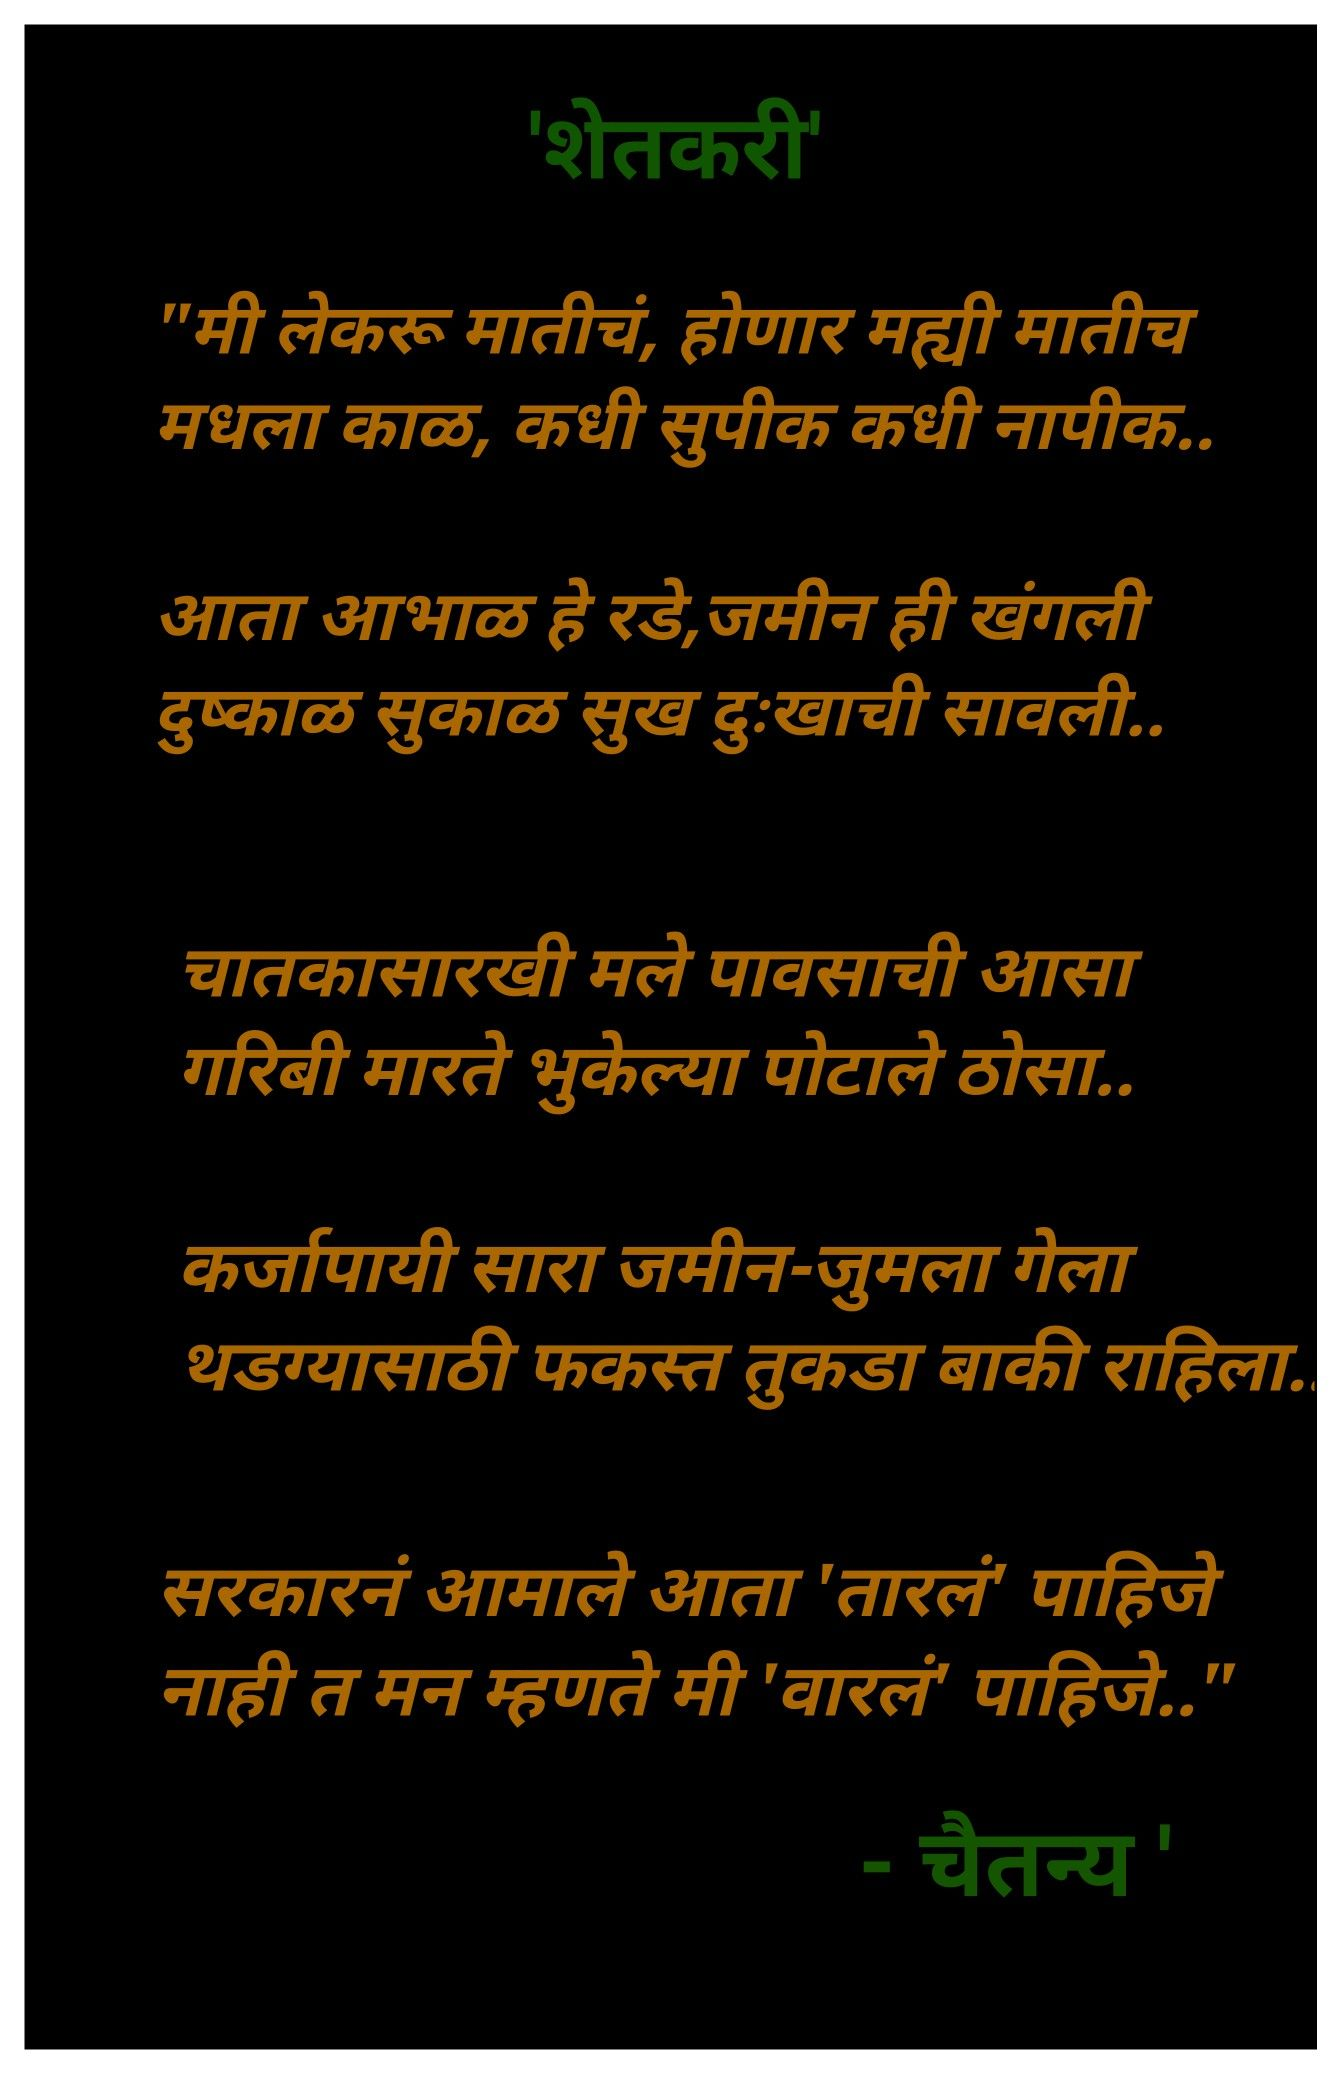 Marathi Poem Farmer Marathi Poems Farmer Poem Poems